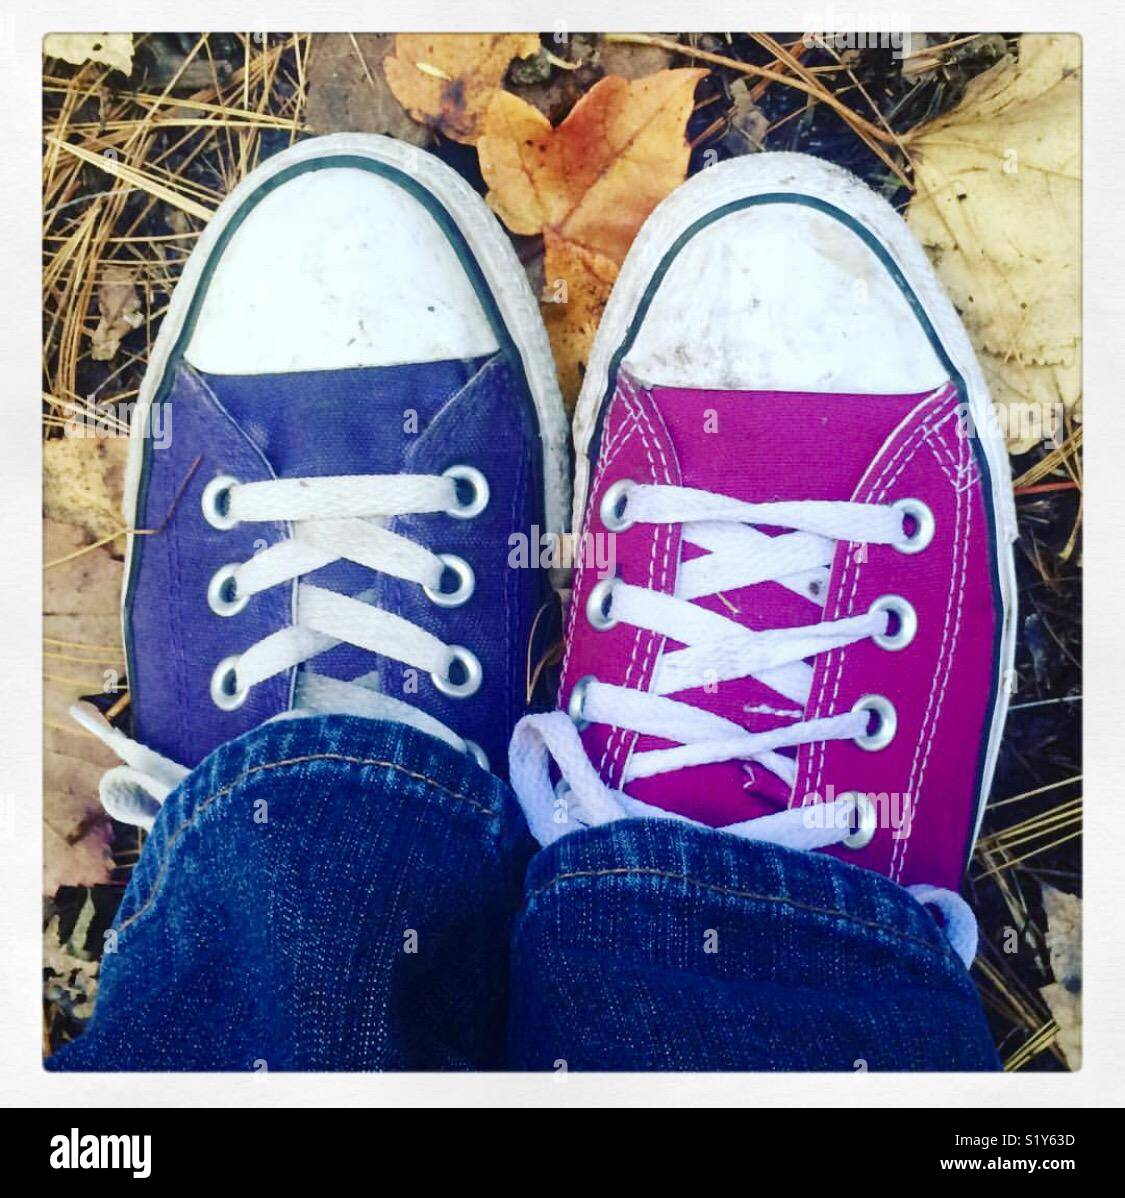 Purple and pink converse all stars running shoes - Stock Image